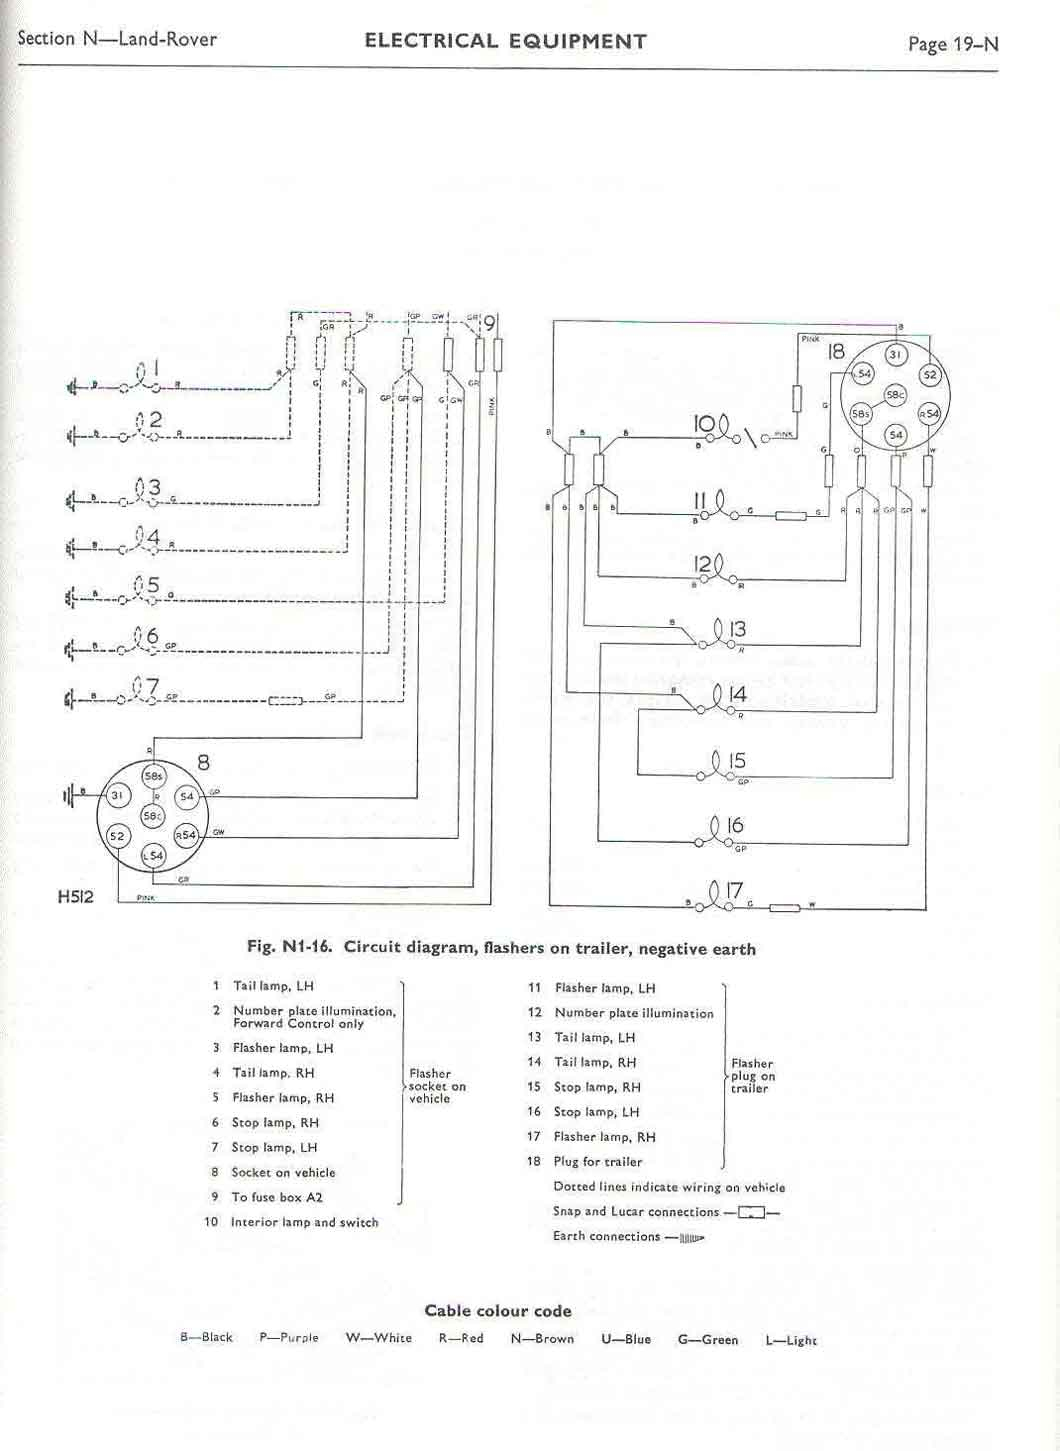 Land Rover Trailer Wiring | Wiring Diagram - Discovery 3 Trailer Wiring Diagram